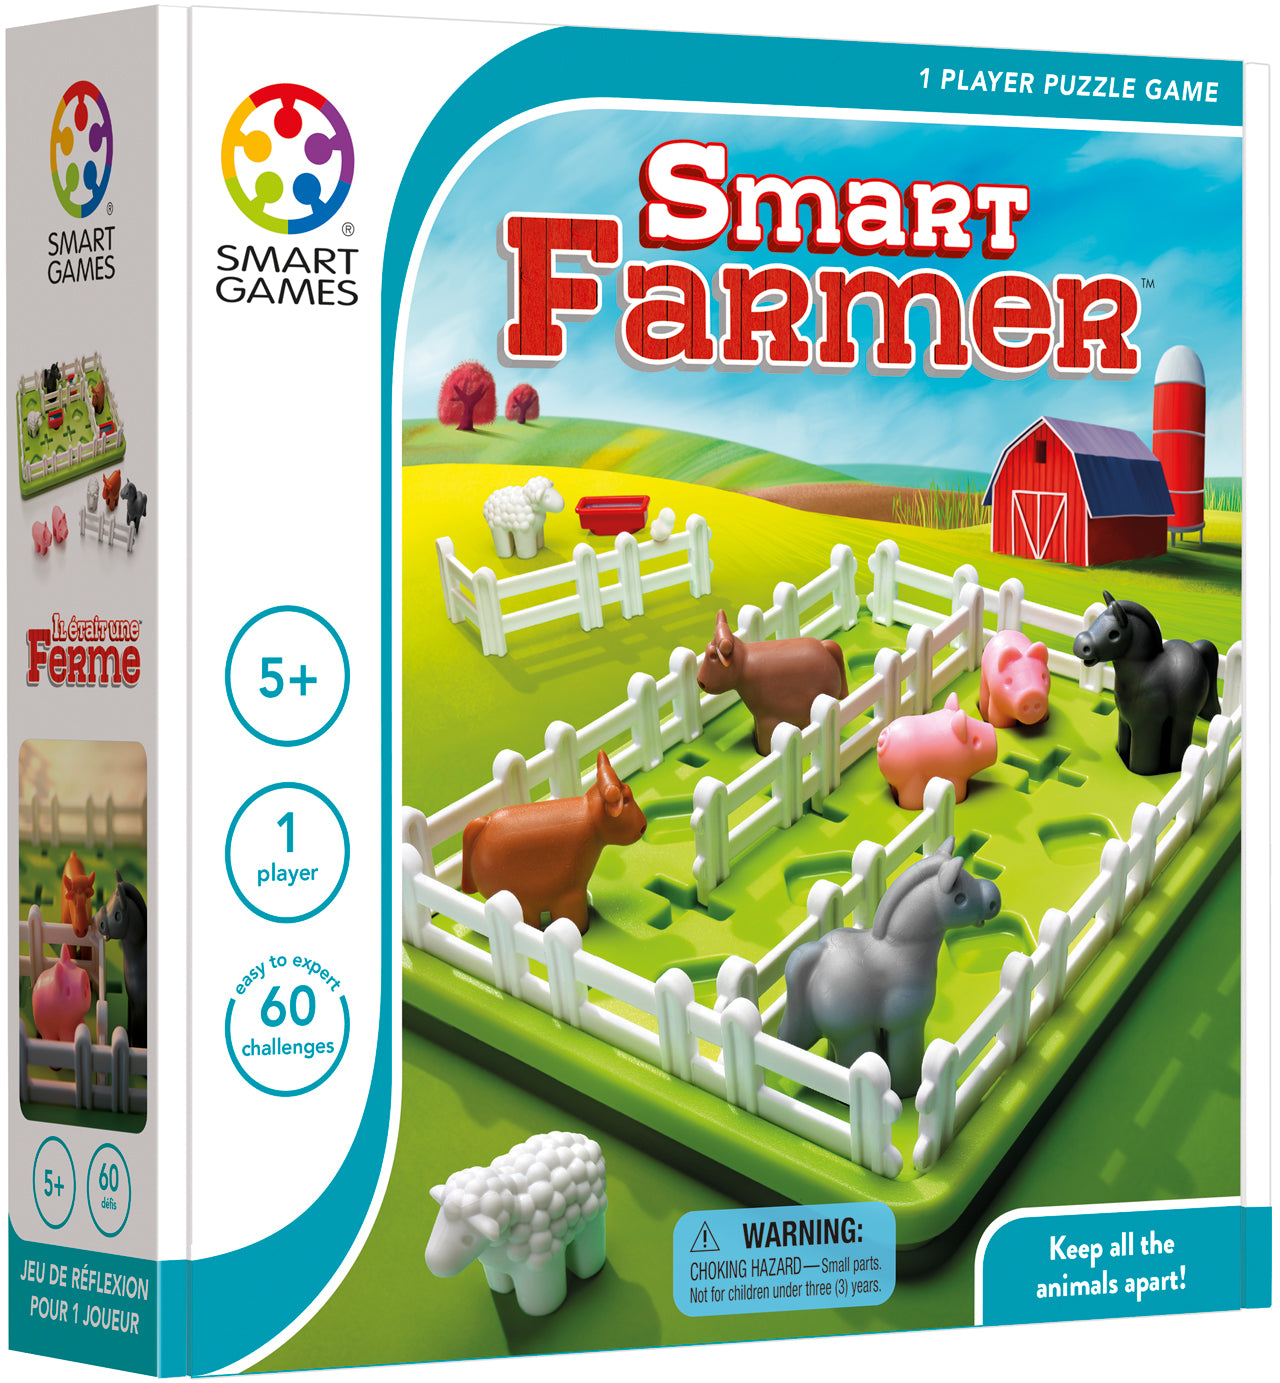 Smart Games Smart Farmer box